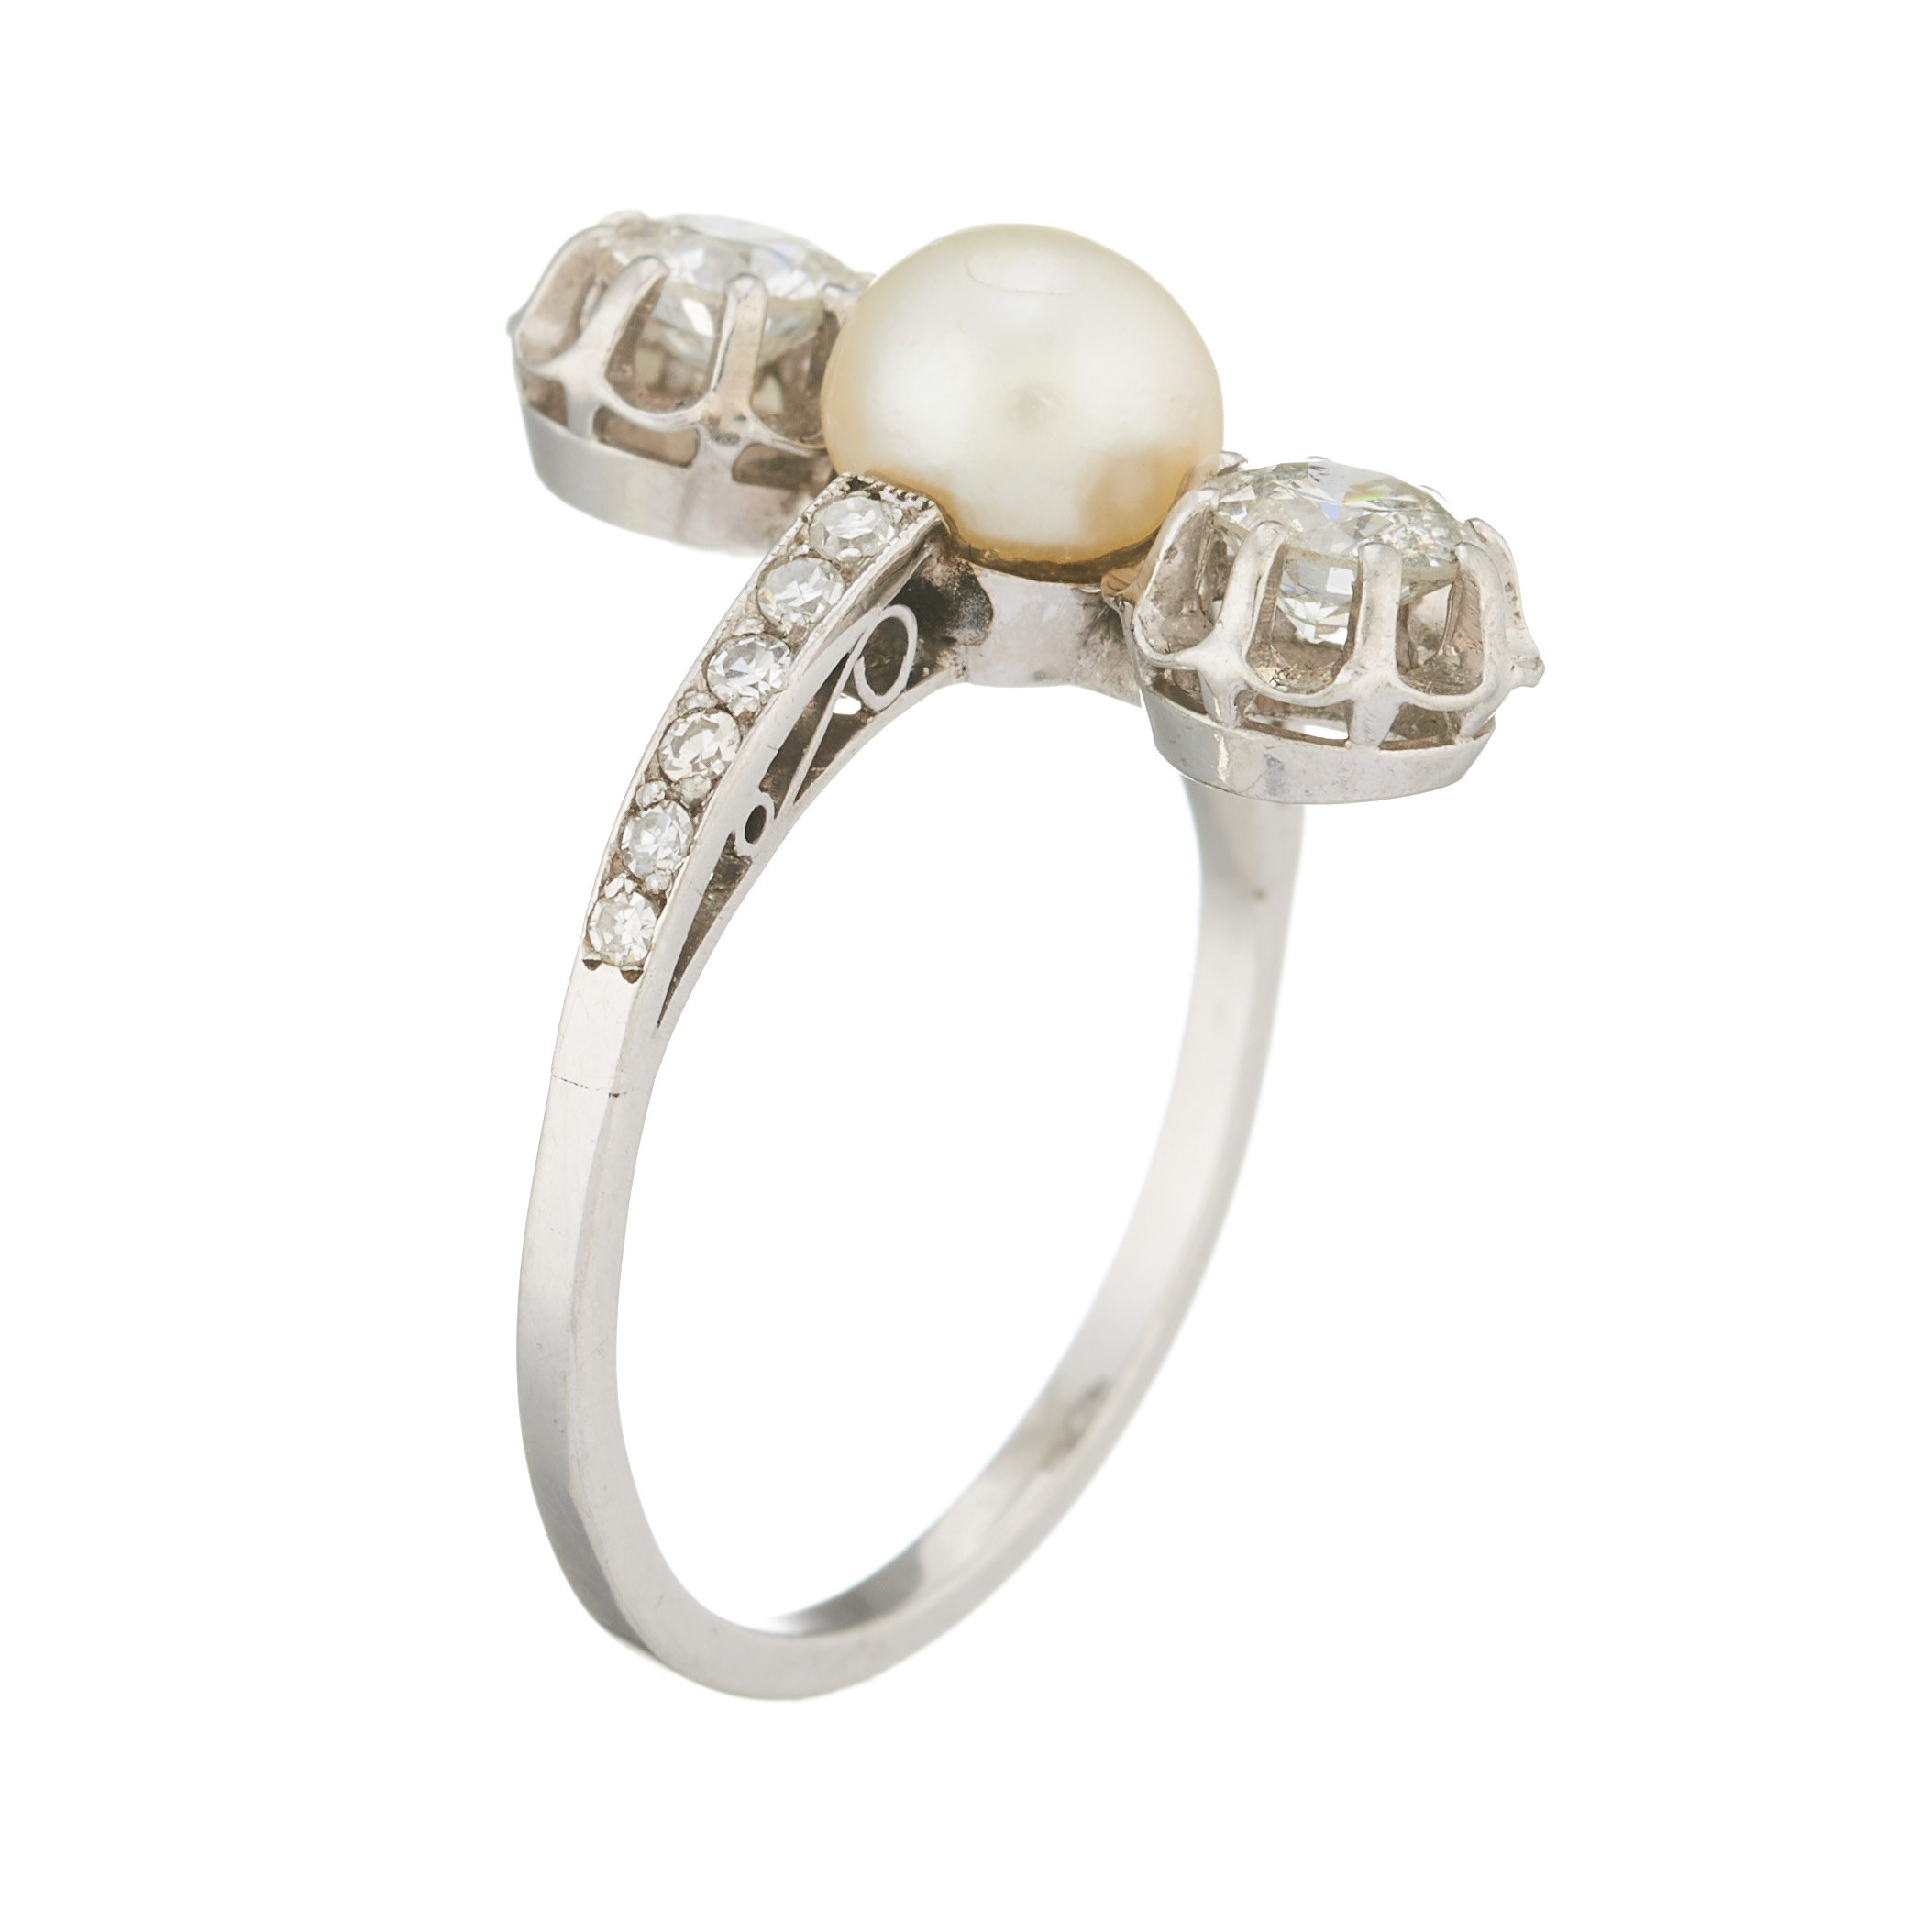 An Edwardian platinum, natural pearl and diamond three-stone dress ring - Image 2 of 2